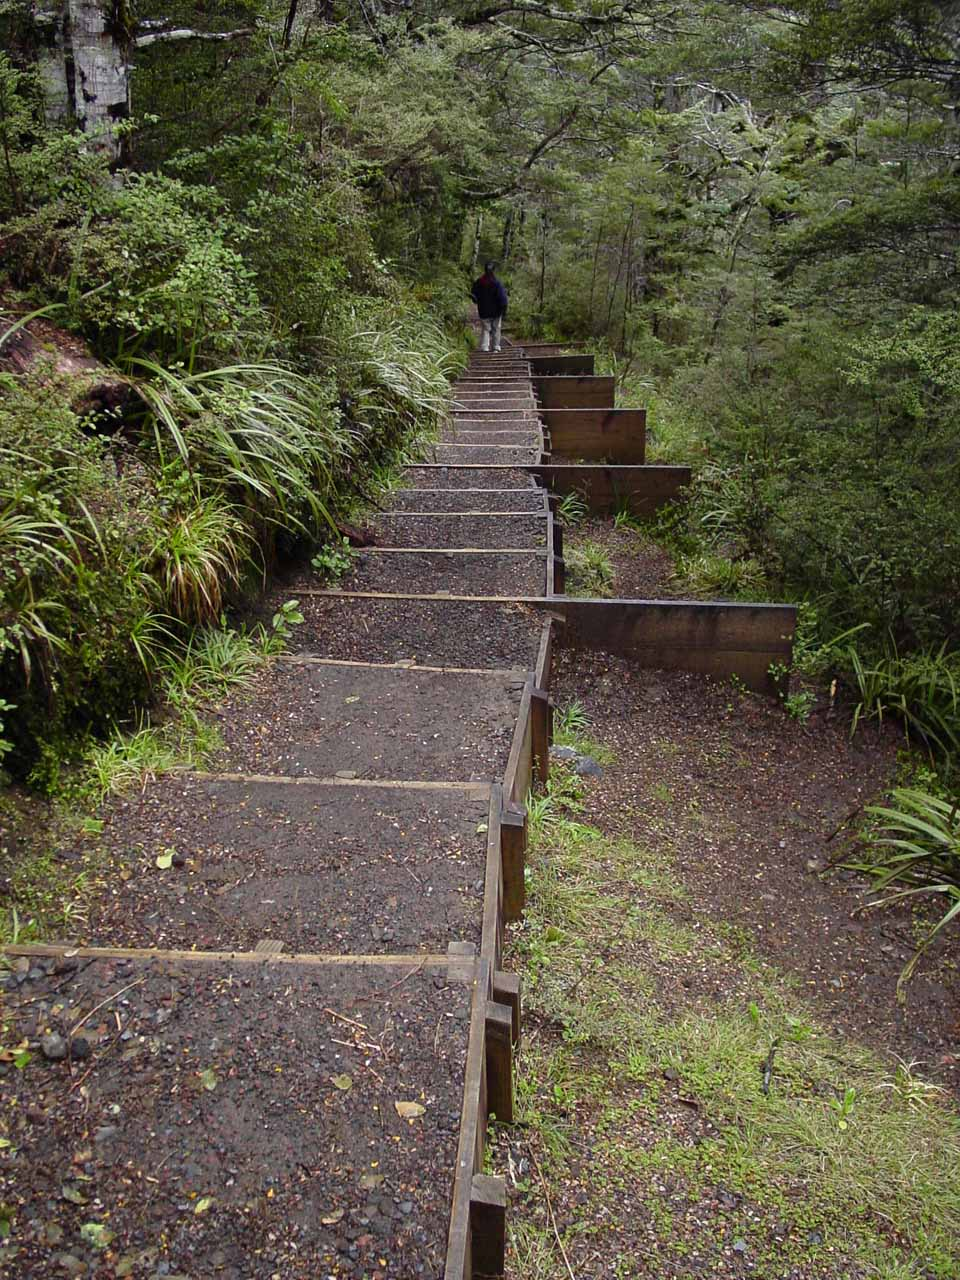 The track descending towards the base of Waitonga Falls